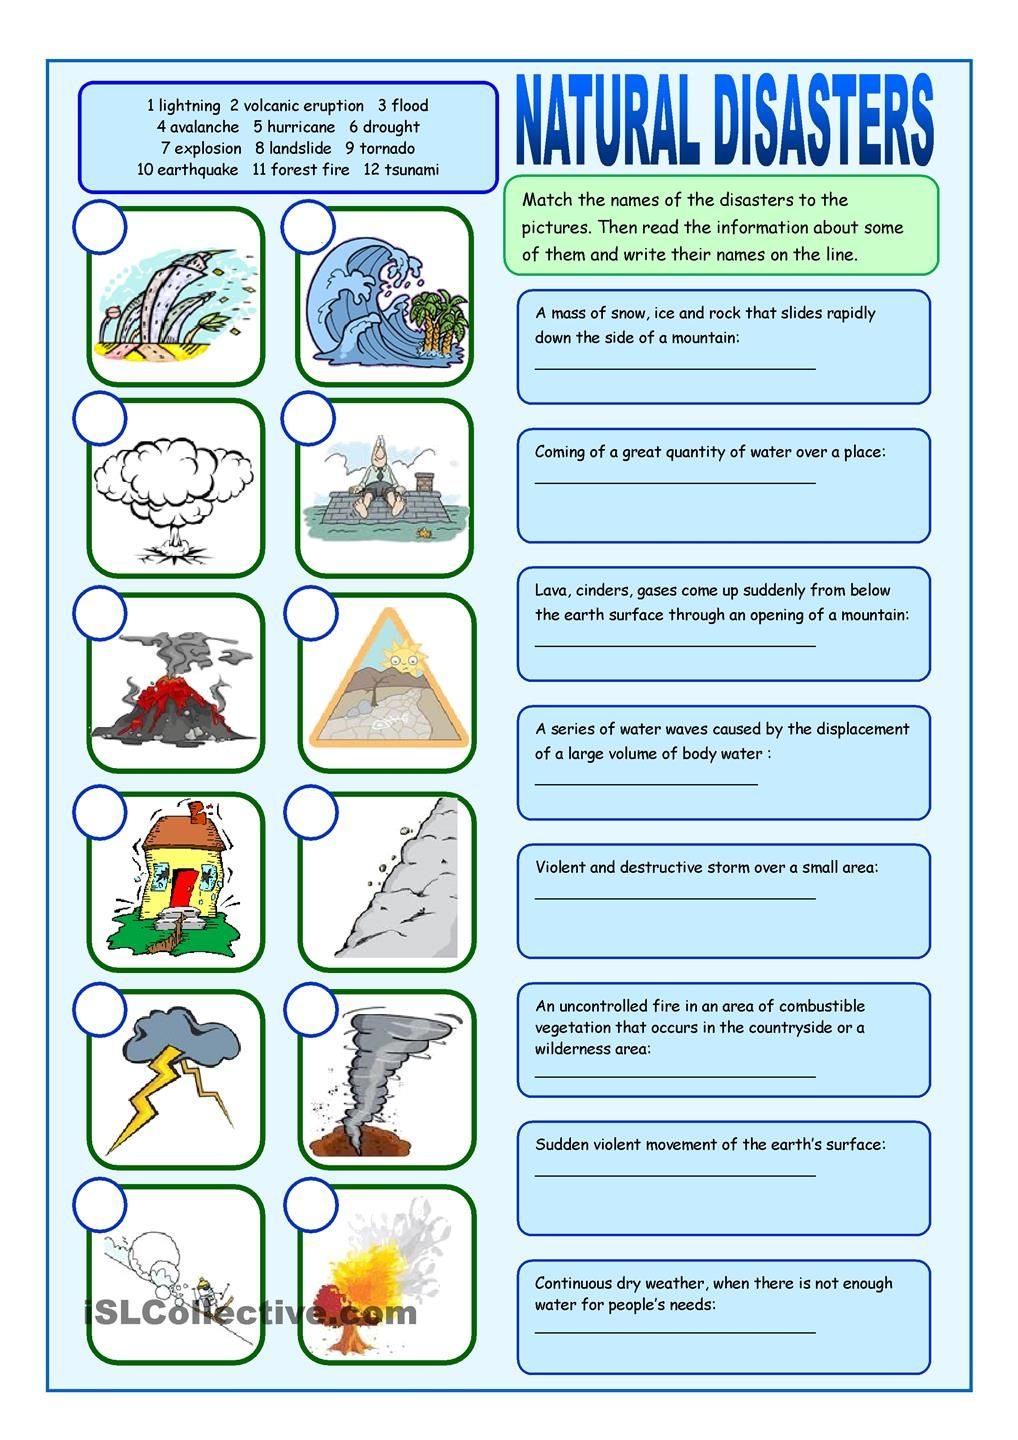 natural disasters vocabulary exercises tefl natural disasters matching exercises